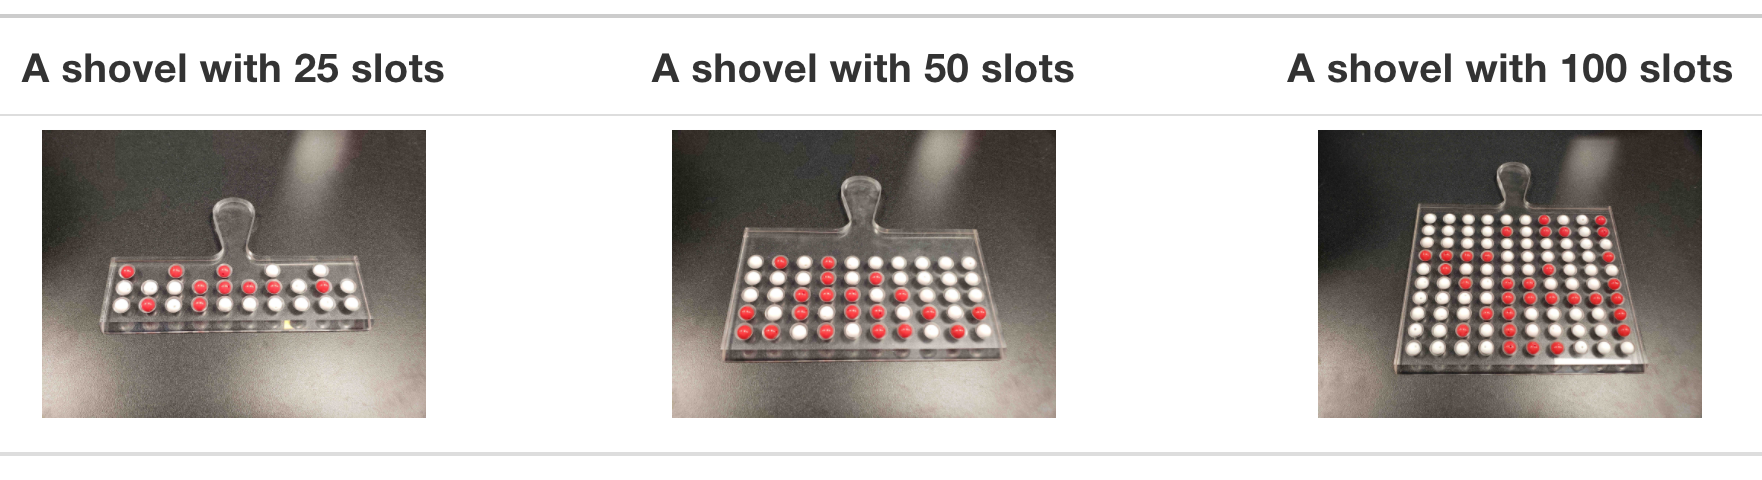 Three shovels to extract three different sample sizes.